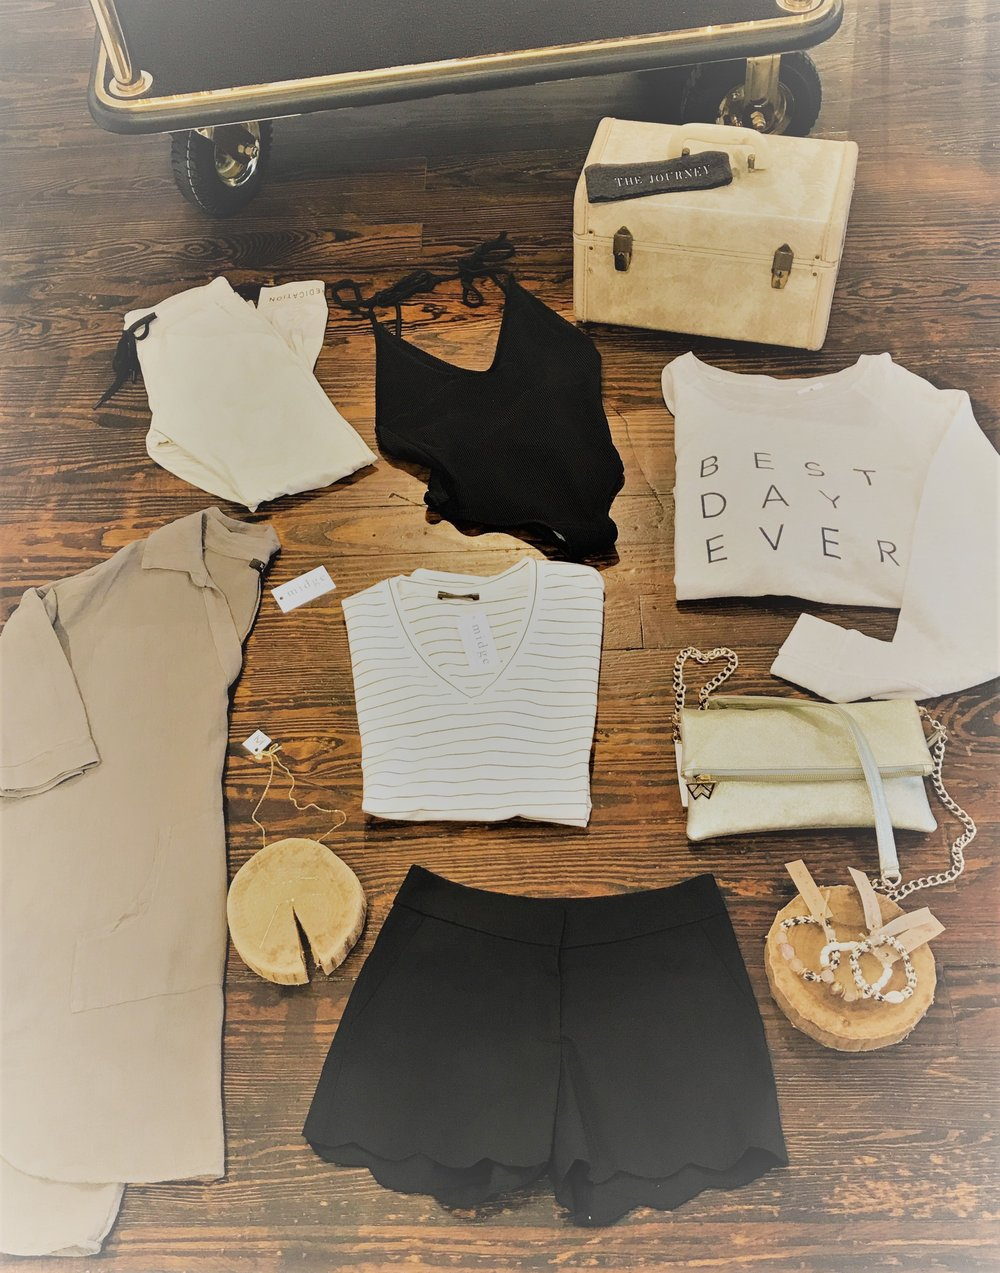 Olive Linen Shift Dress, Comfy Joggers for Pajamas/Lounging, V-Neck Black Swimsuit, 'The Journey' Headband, Long Gold Necklace (to dress up tshirt & shorts or dress), Black & White Striped Tee, Black Scalloped Shorts, Kelly Wynne Crossbody, Twine & Twig Bracelet Stacks, 'Best Day Ever' Sweatshirt.... Don't forget your flip flops & sunnies!